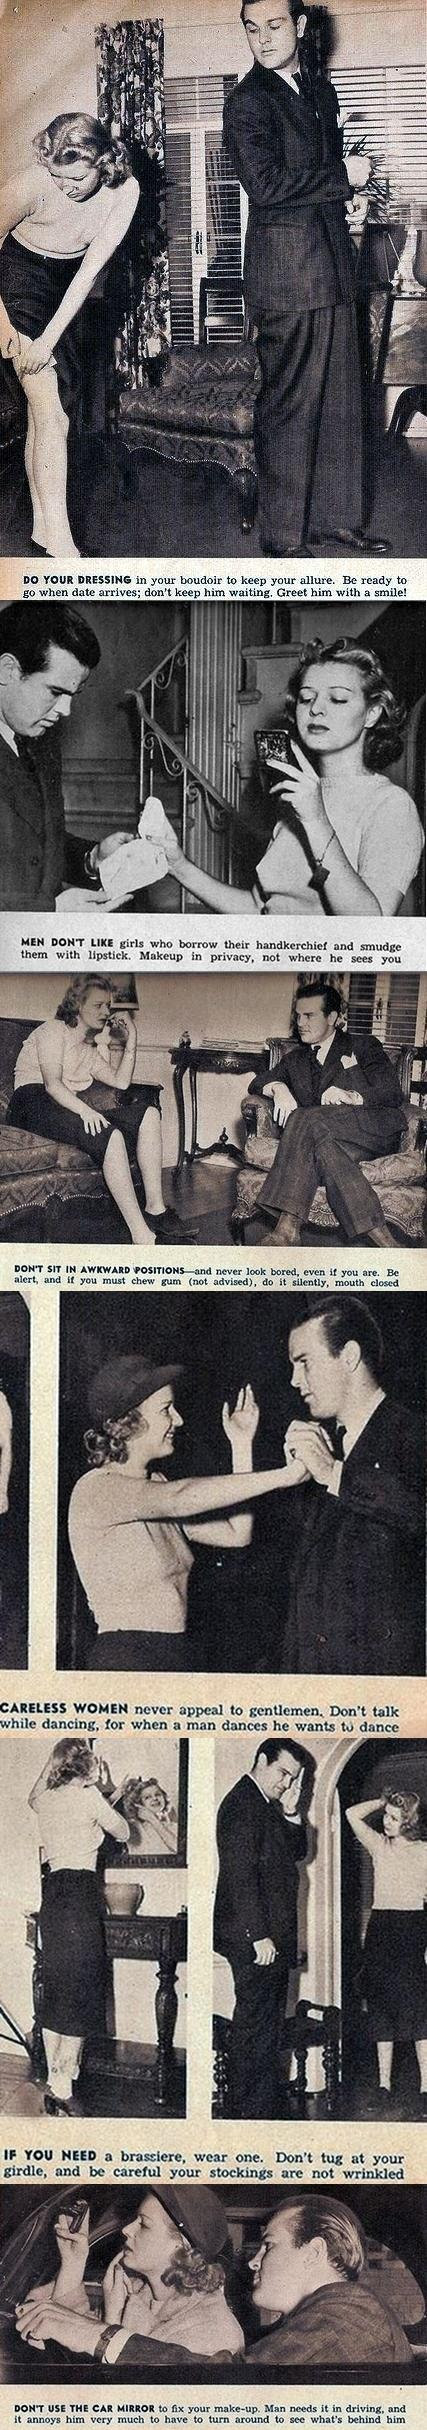 How to please a man on a date (1930): Part 1